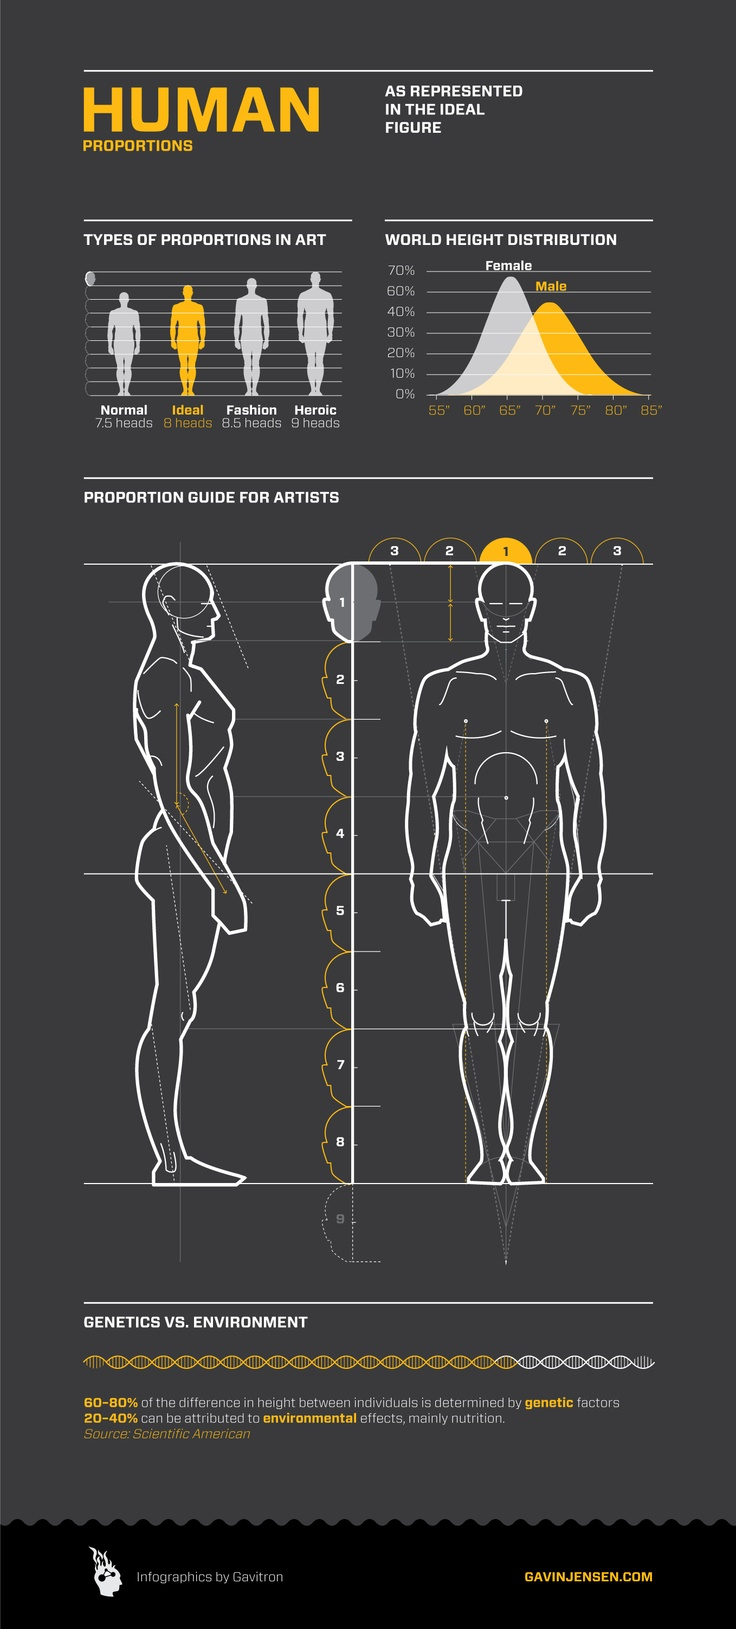 Proportion is the relation of one portion of an object to the whole. this picture shows the correct proportions of the human body.